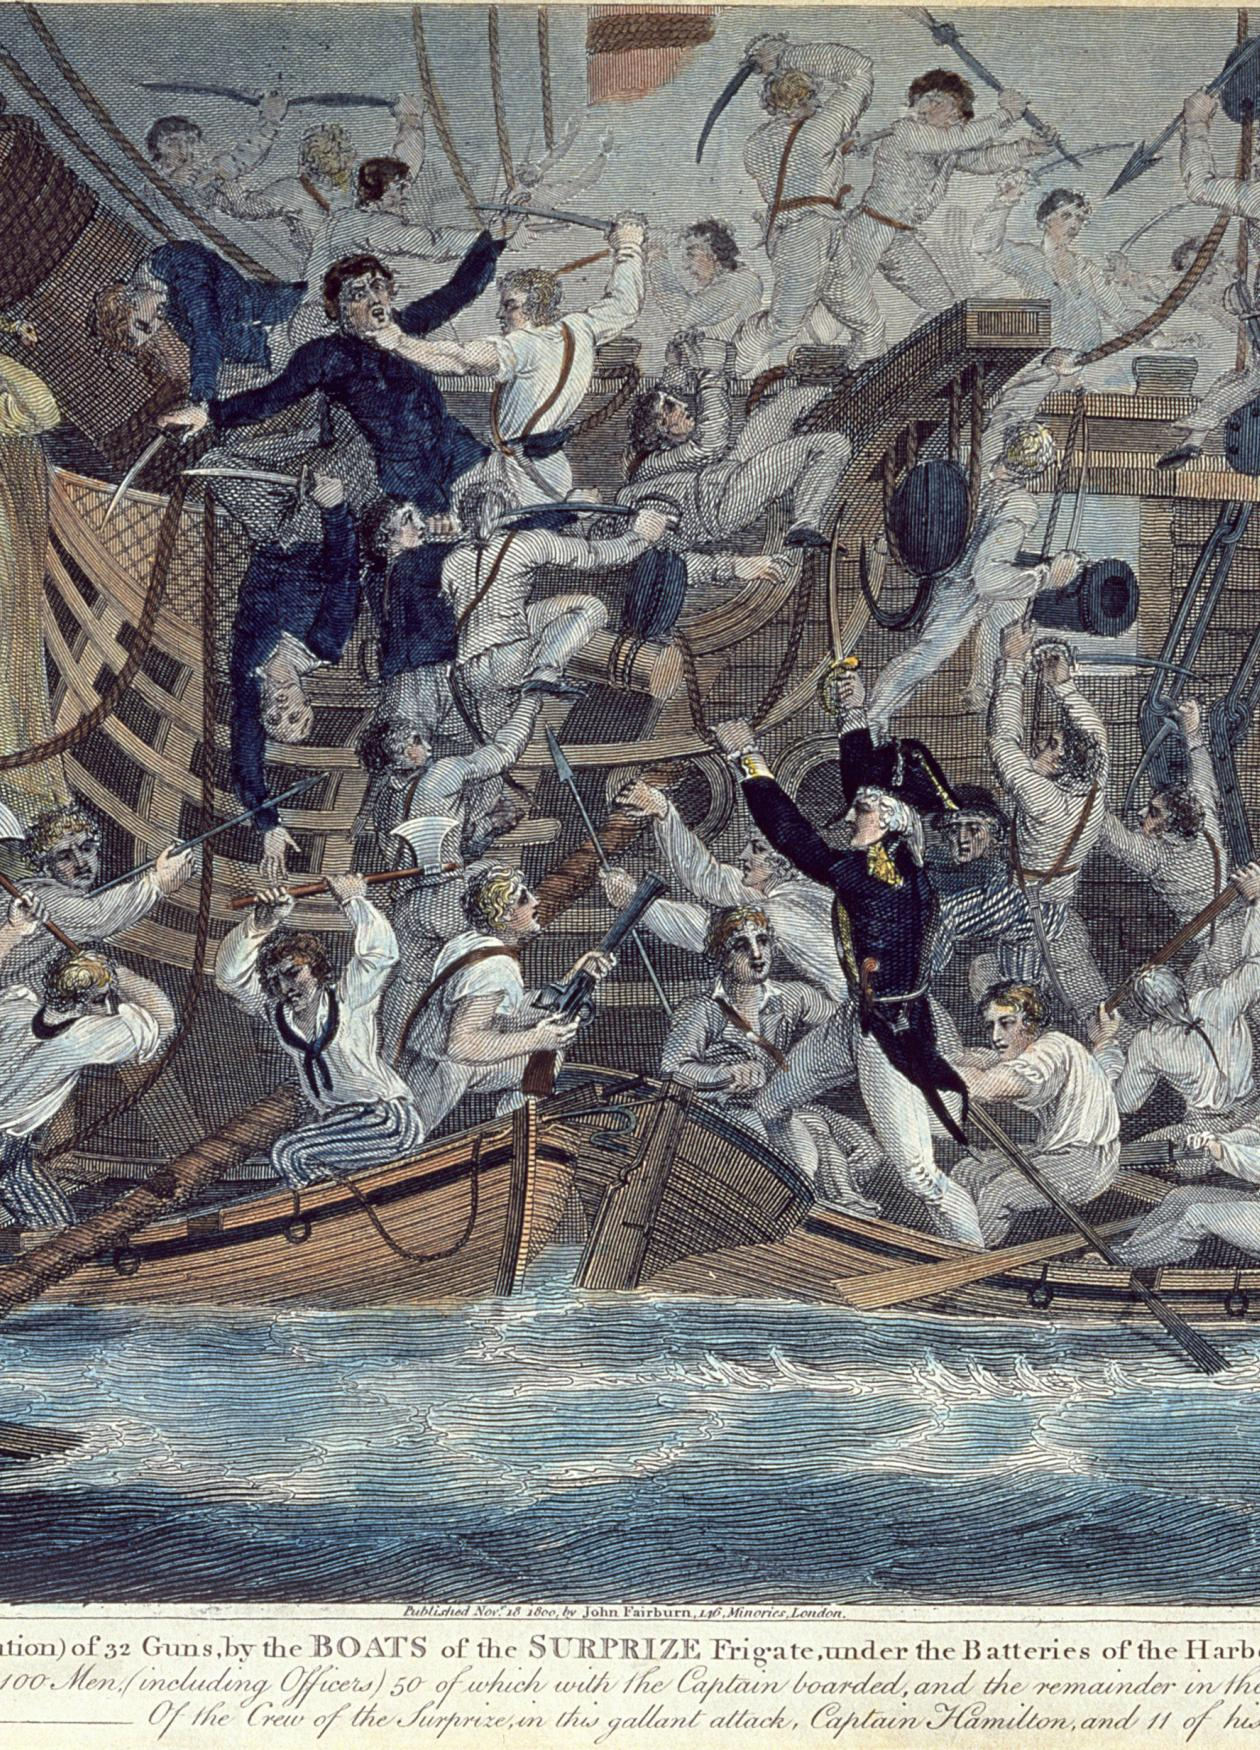 Painting of mariners rebelling against their captain and fighting among themselves aboard their ship.